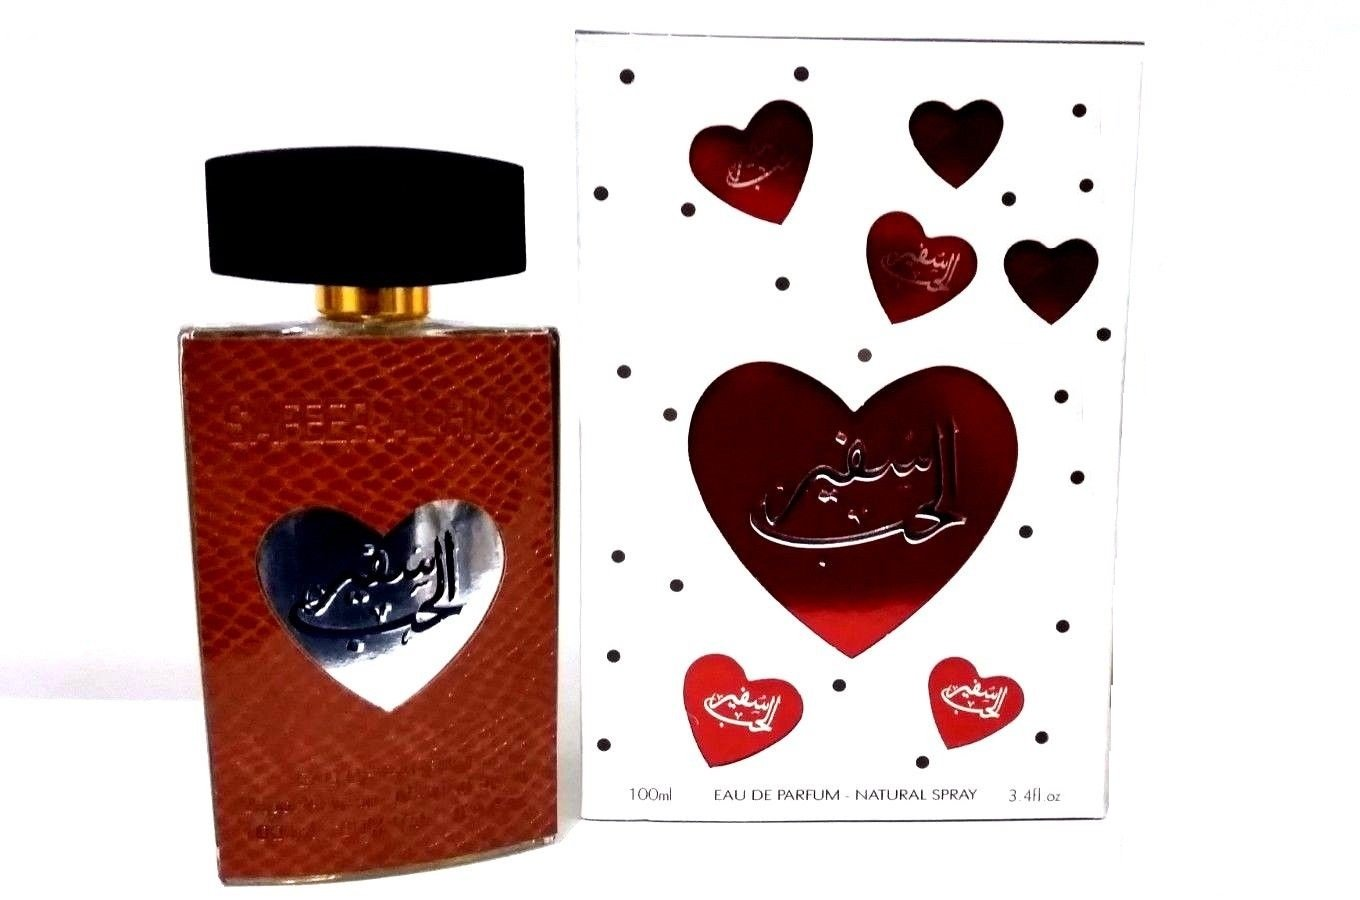 Safeer Al Hub By Ard Al Zaafaran 100ml Edp Perfume Spray Amazonco